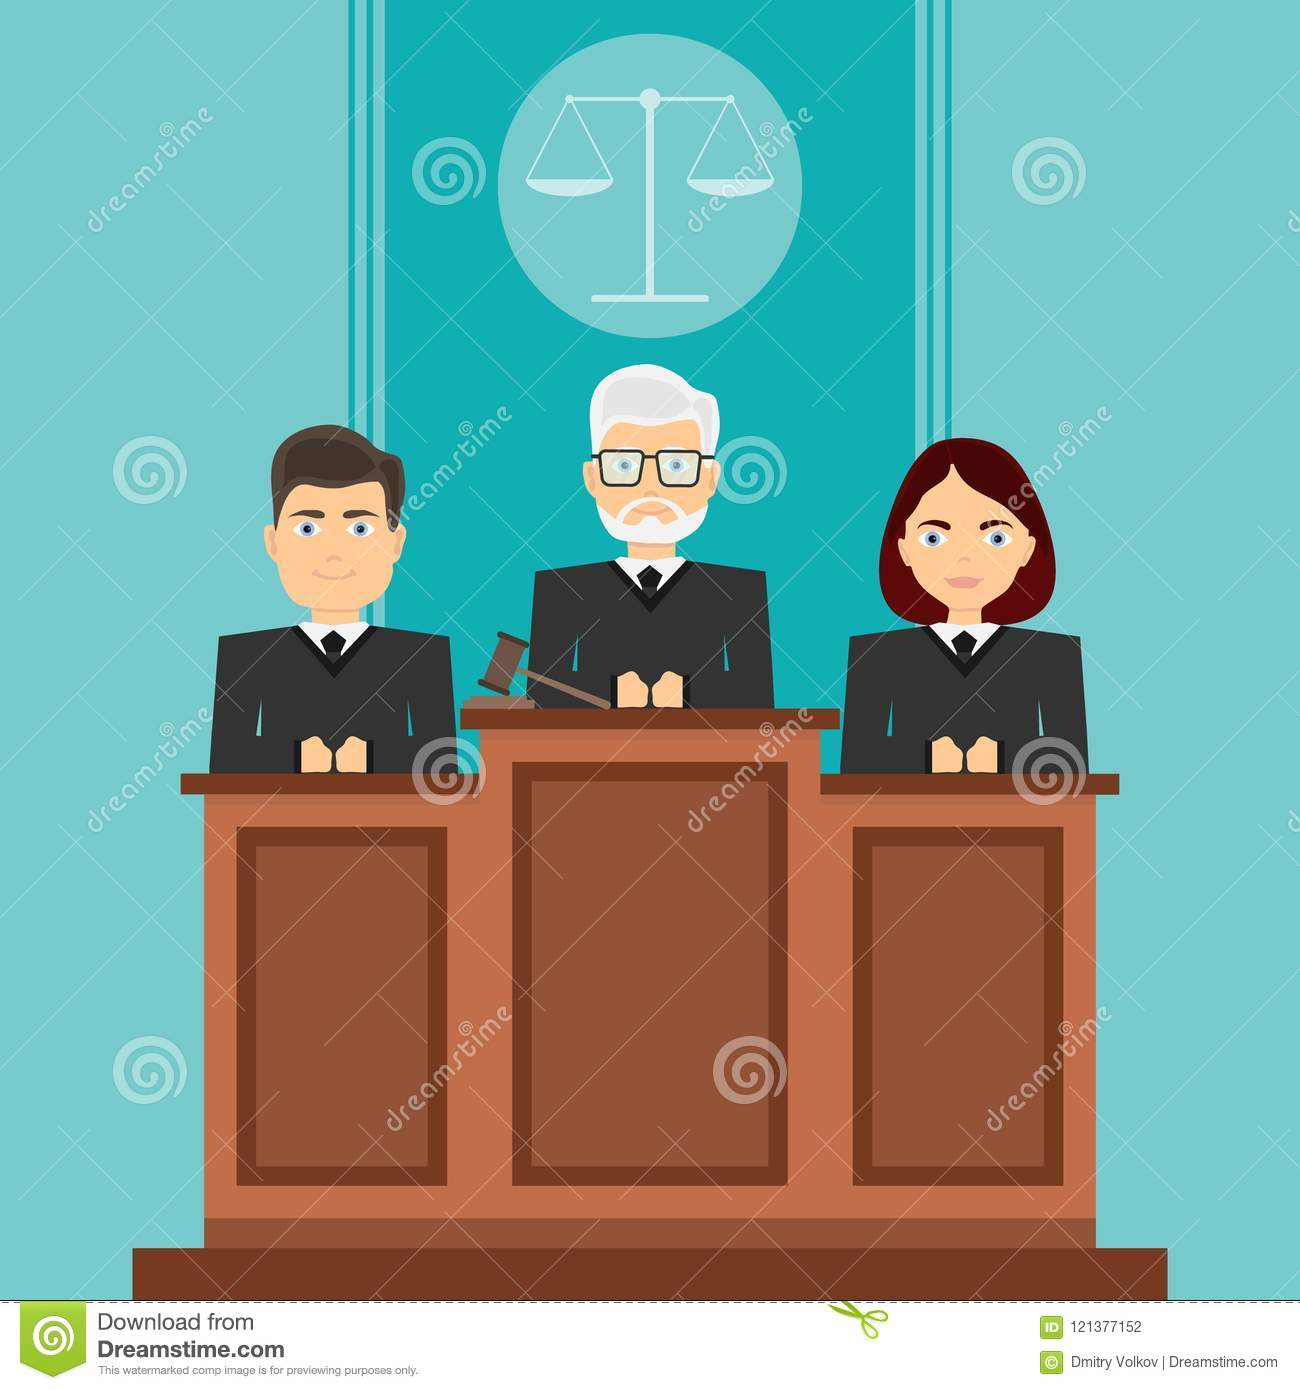 Court session. The judges sit in court. The judges sit in their seats.